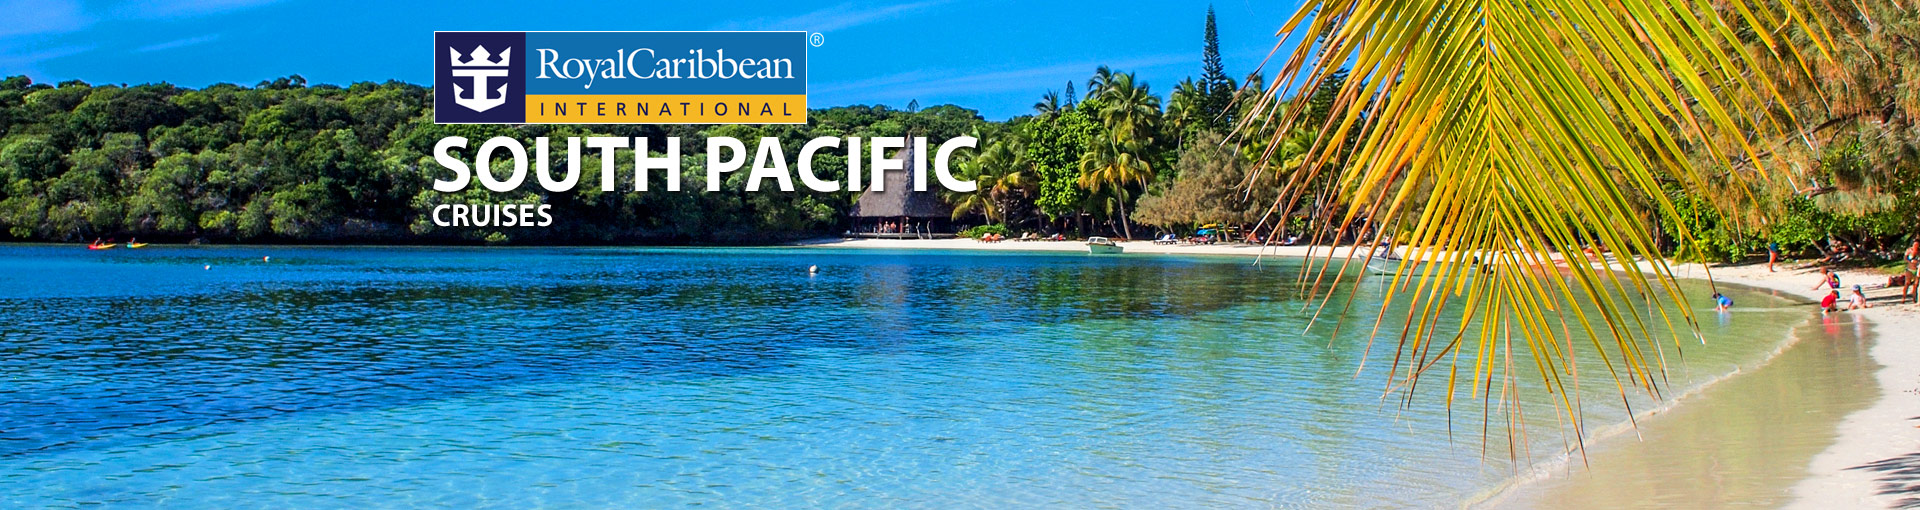 Royal Caribbean South Pacific cruises